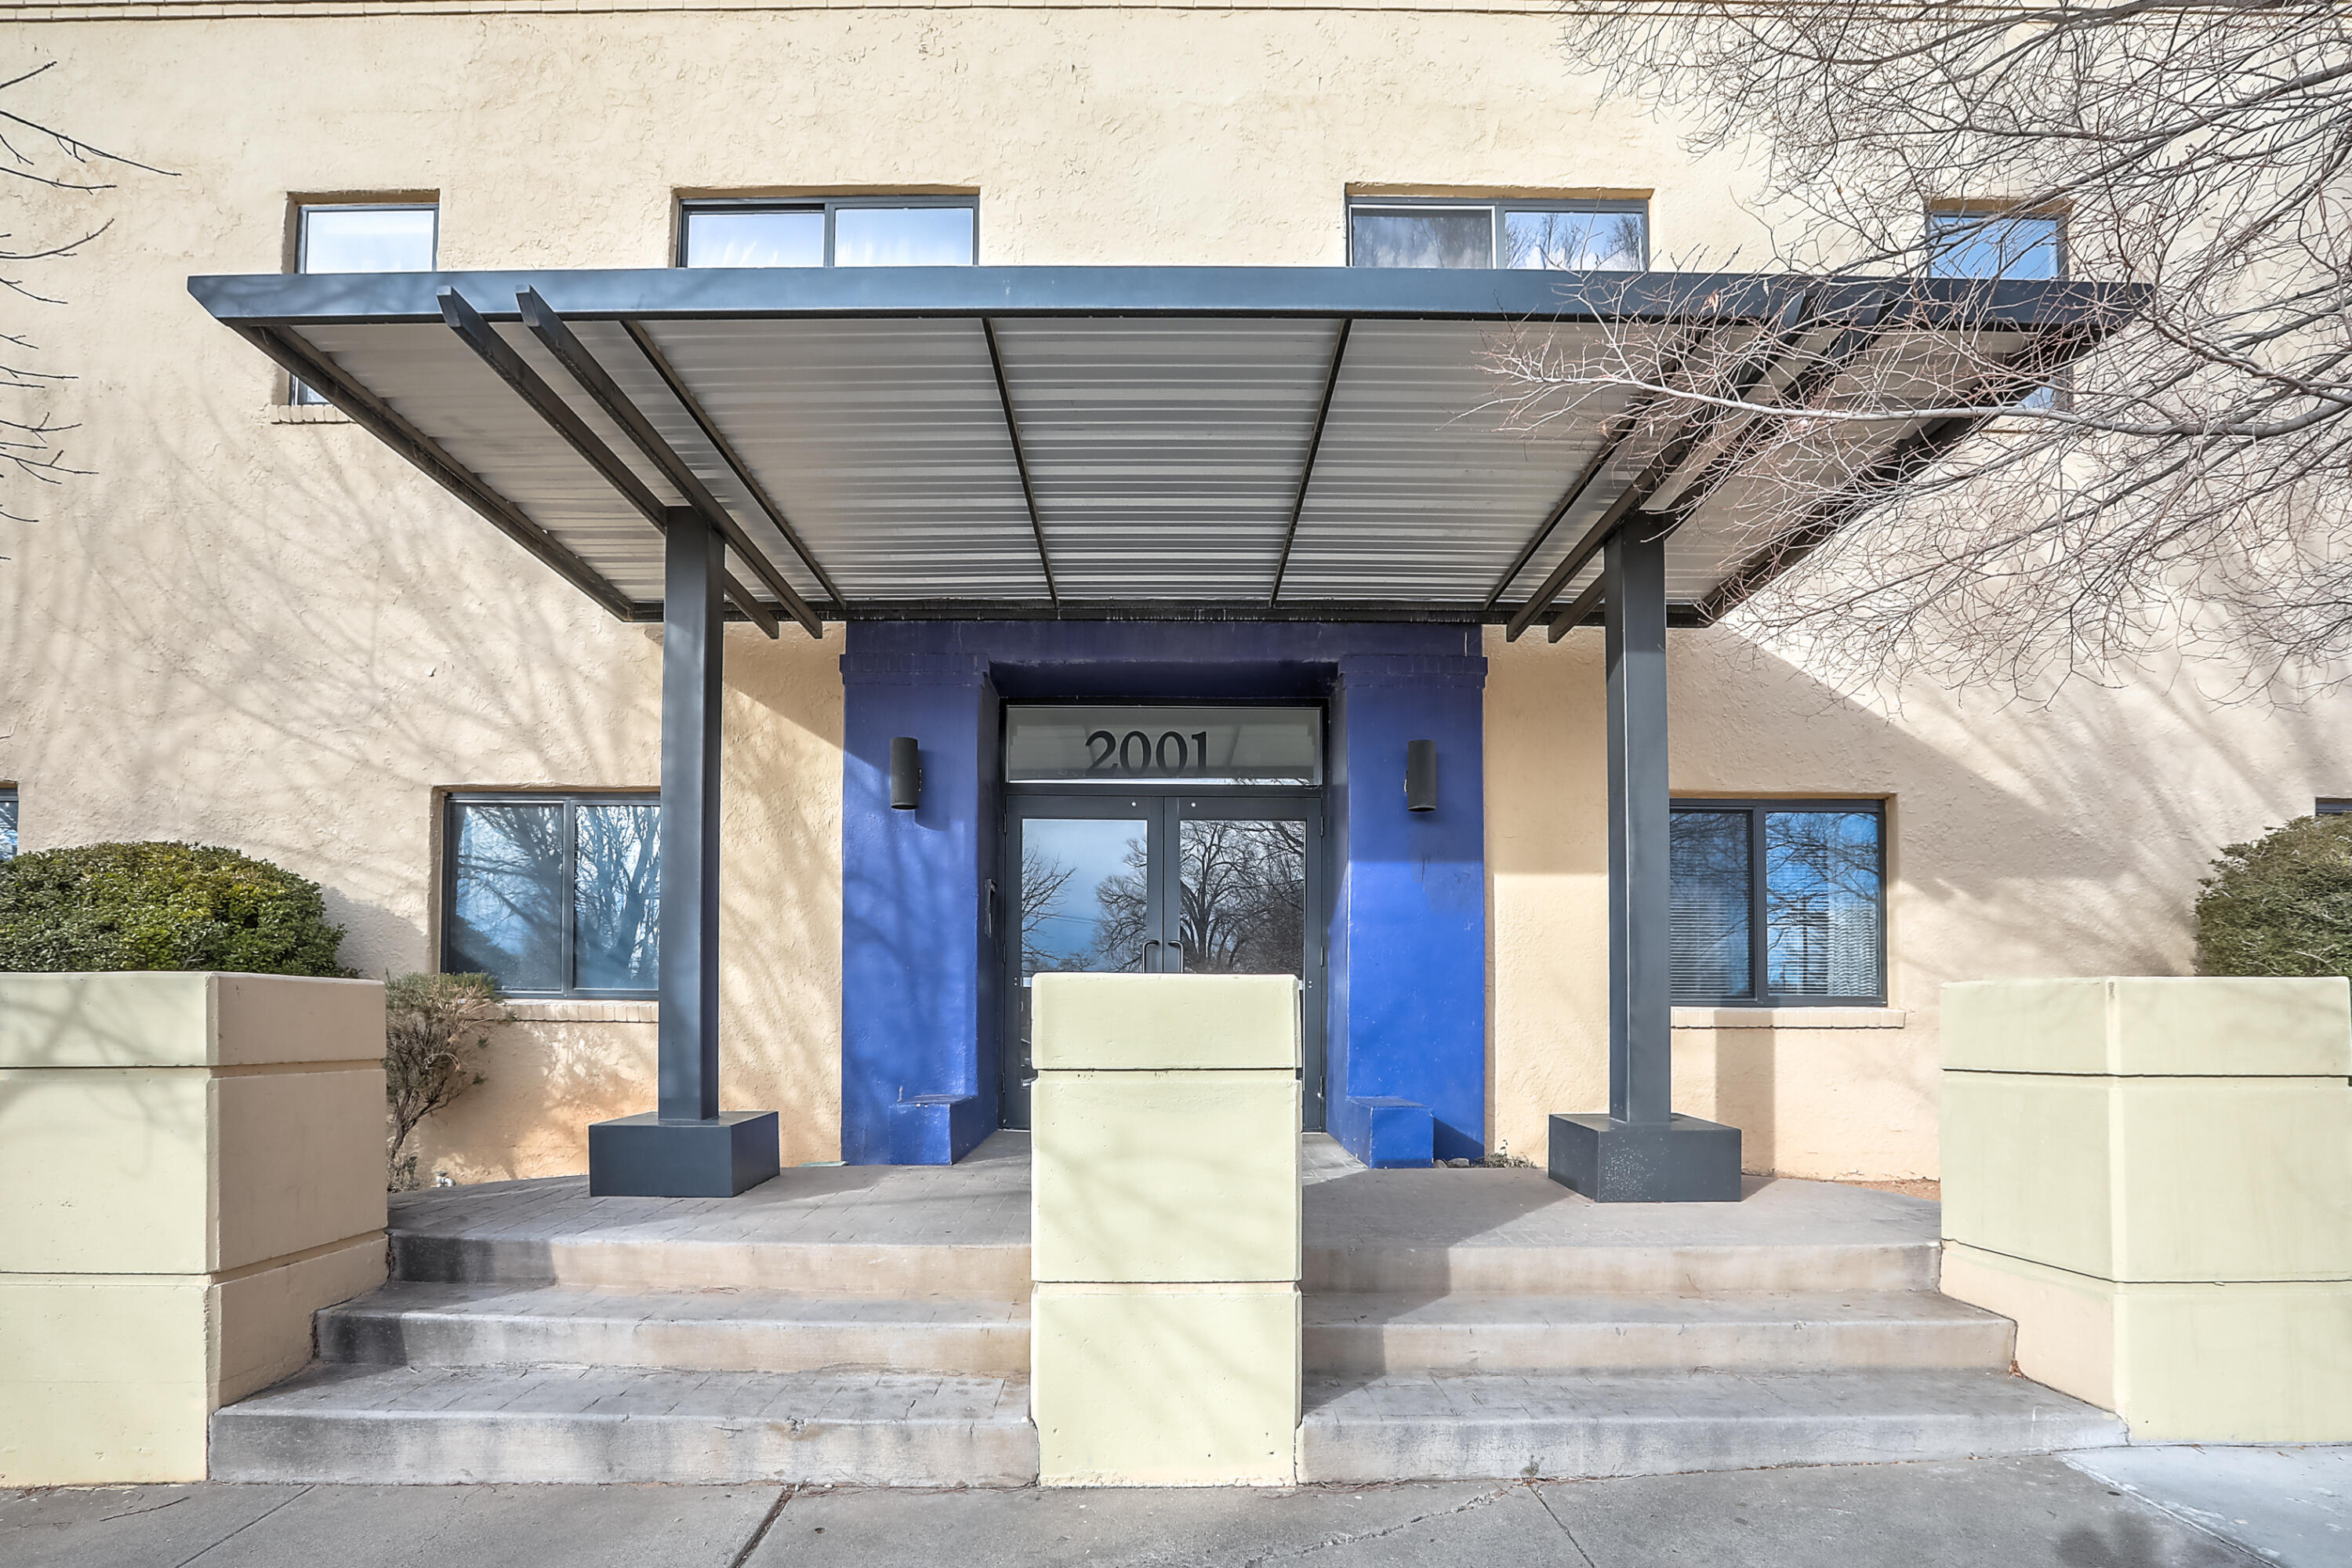 Amazing opportunity to own a modern condo within .25 mile of UNM. All the convenience of Midtown/University area and has hotels and restaurants that are conveniently located near the I-25/I-40 interchange. Beautiful granite countertops with clerestory windows. Huge skylight lets in lots of natural light . You will fall in love with the open architecture of loft living. Unit will convey with washer & dryer, new dishwasher and has refrigerated air. No adverse material facts available. Assigned parking in lot across the street for $55 a month. HOA will not allow Air bnb.